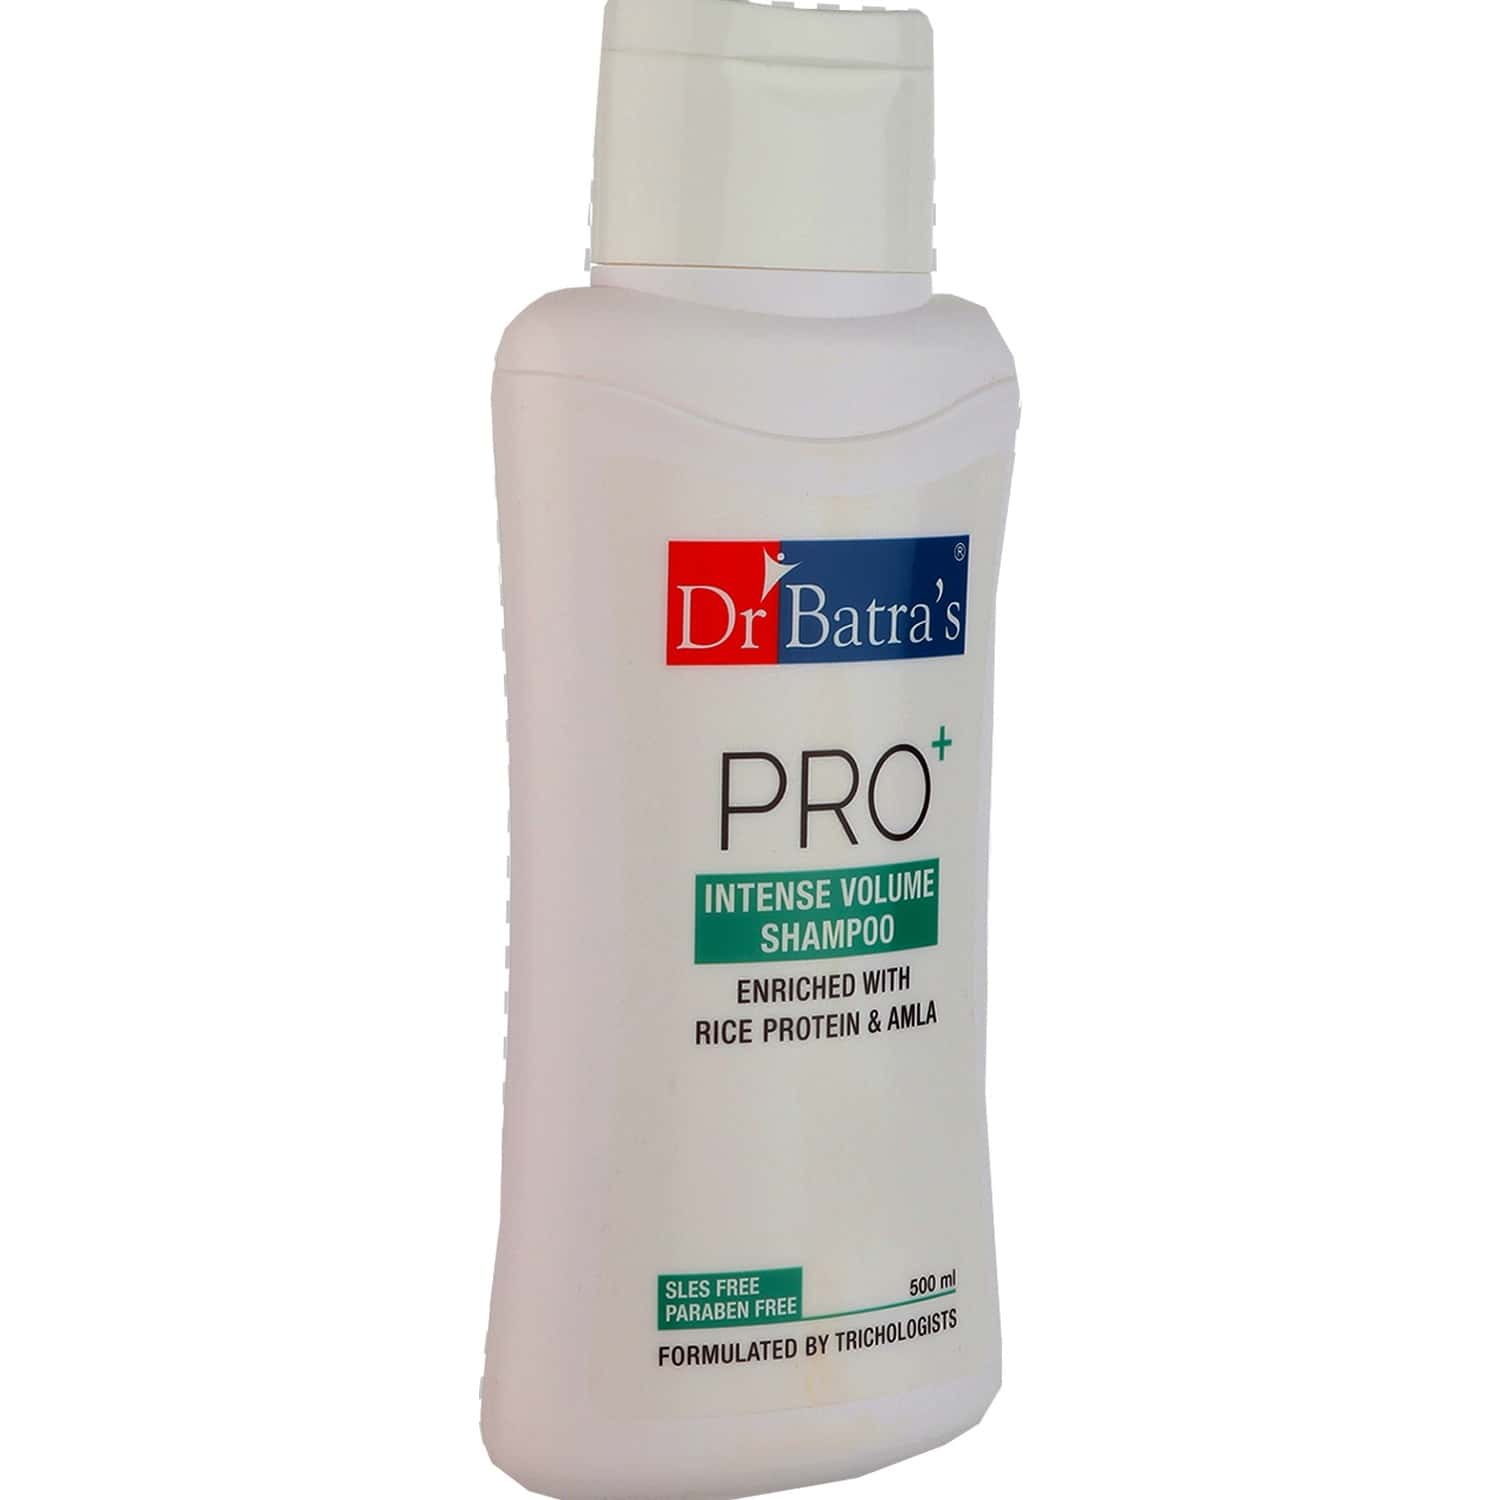 Dr Batra's Pro+ Intense Volume Shampoo Enriched With Rice Protein & Amla - 500 Ml